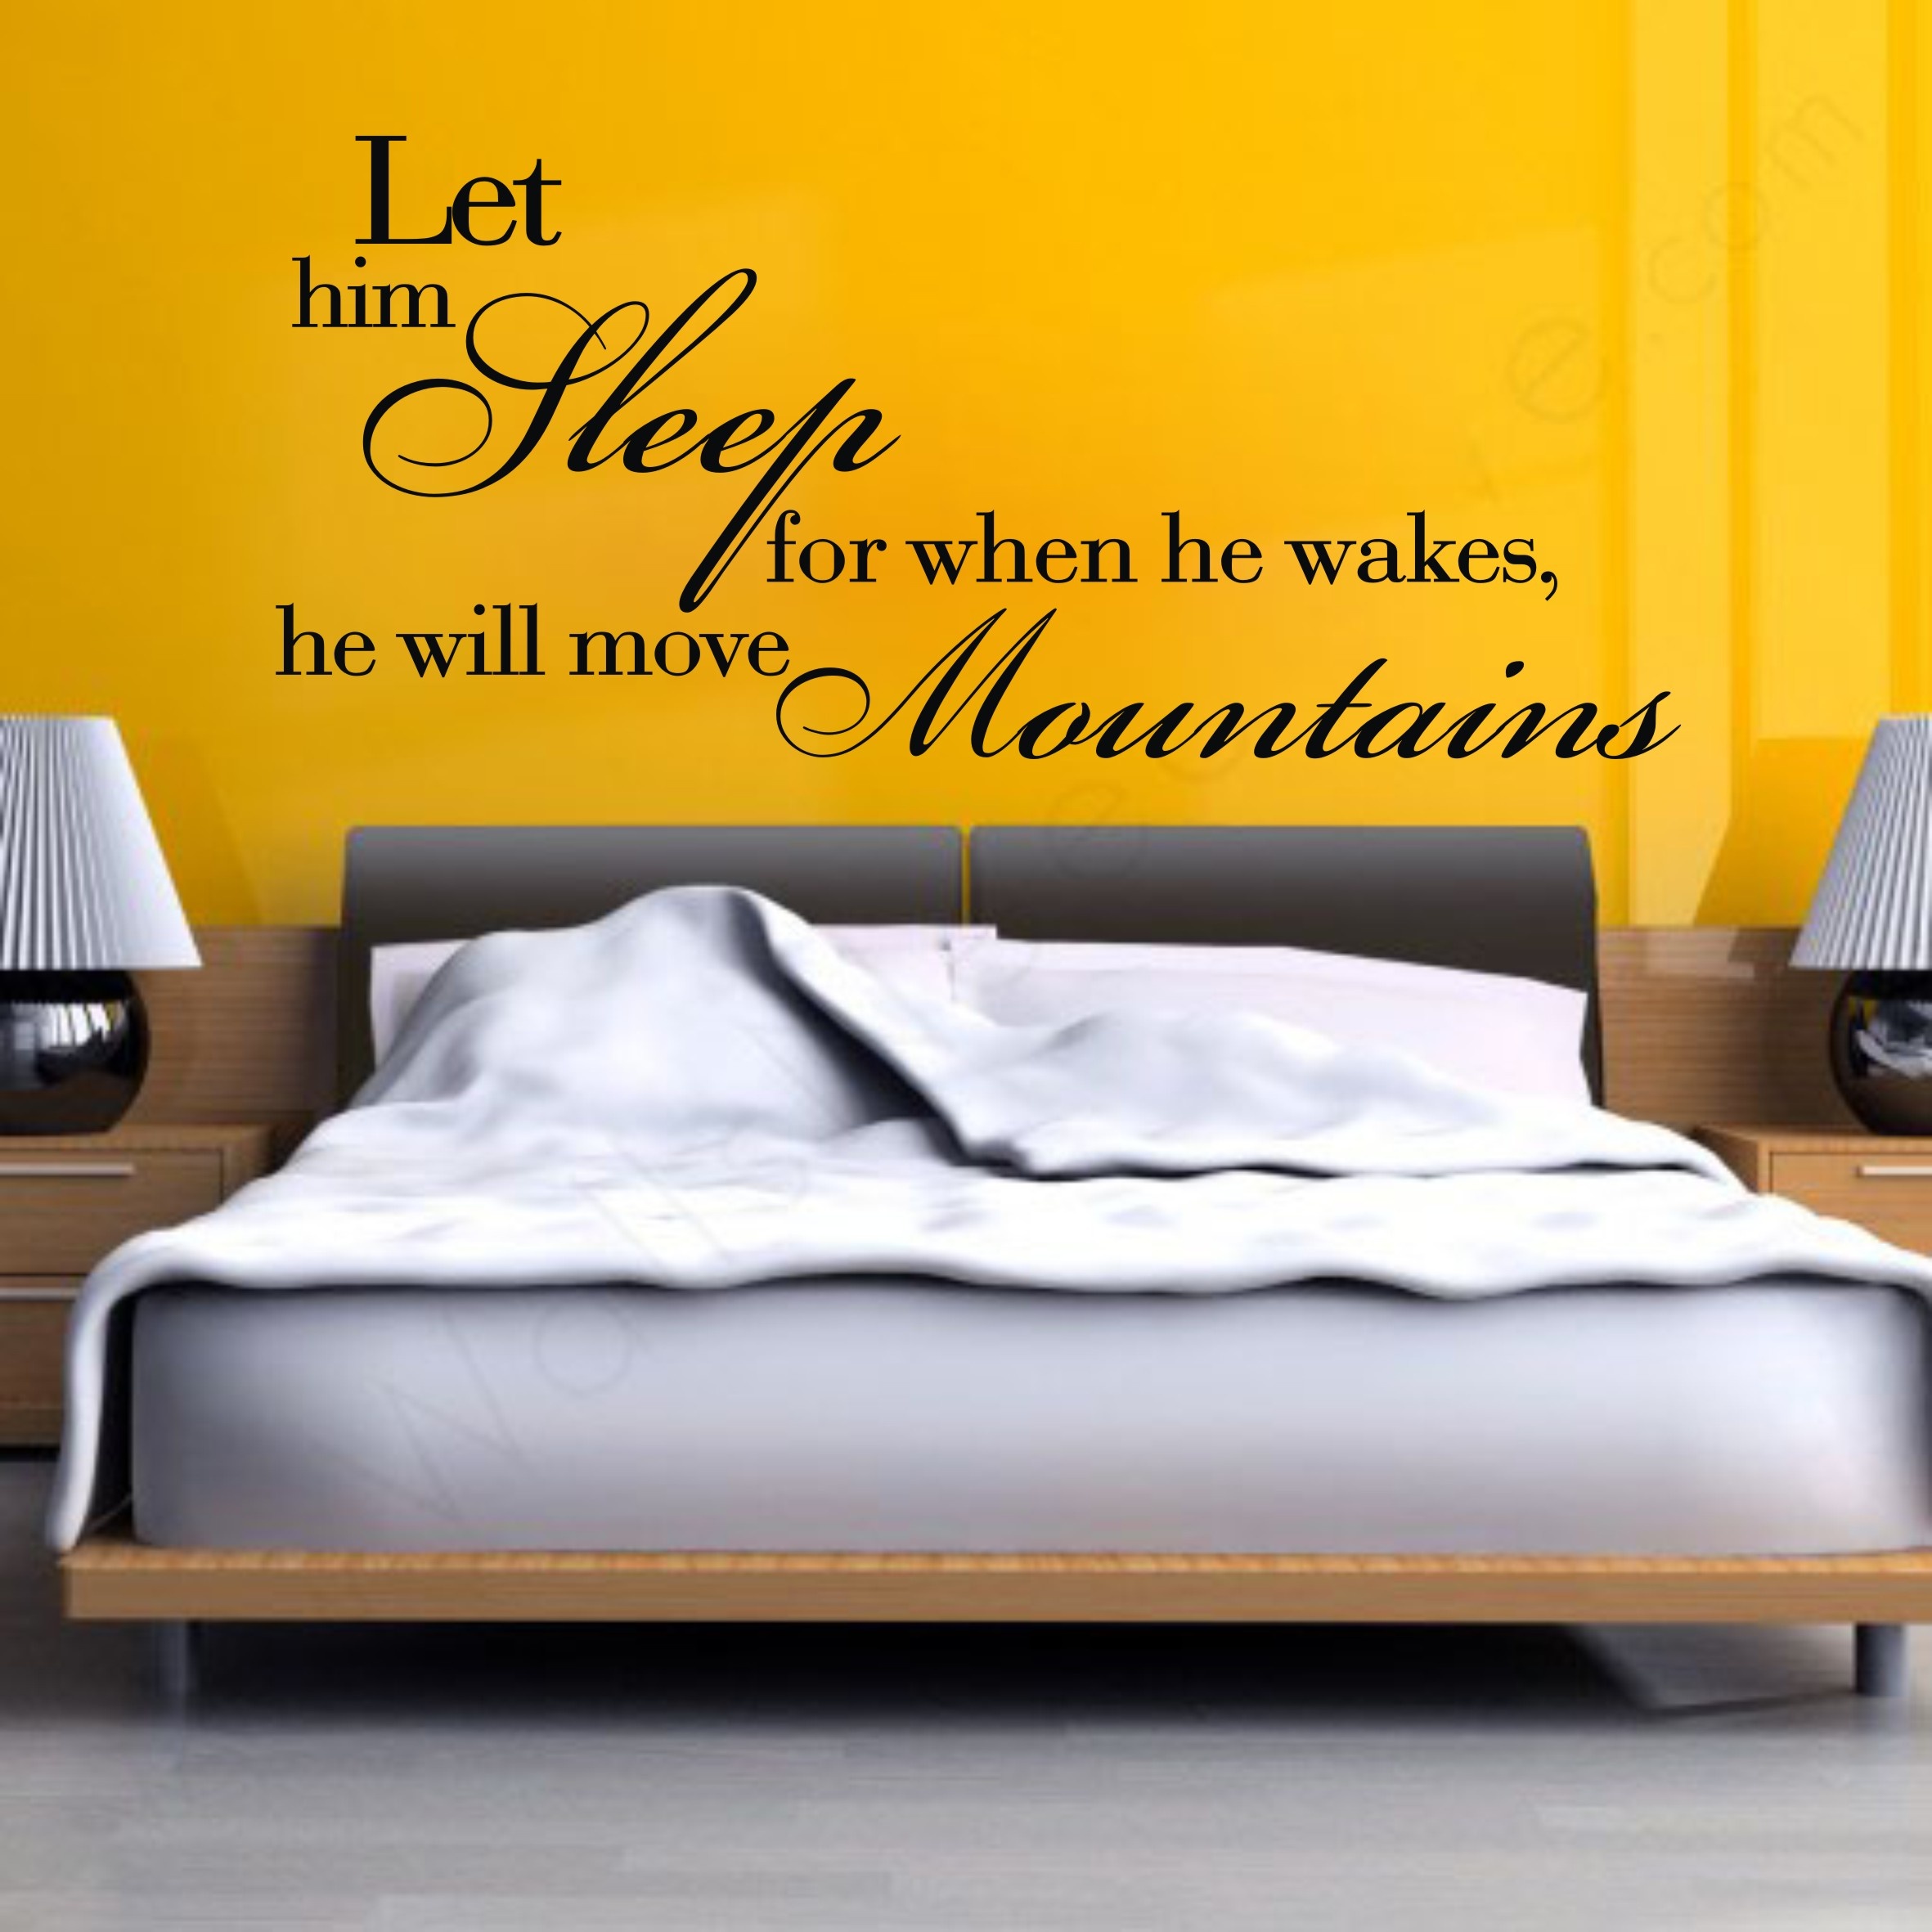 Let Him Sleep For When He Wakes Vinyl Home Decor Wall Stickers Art ...